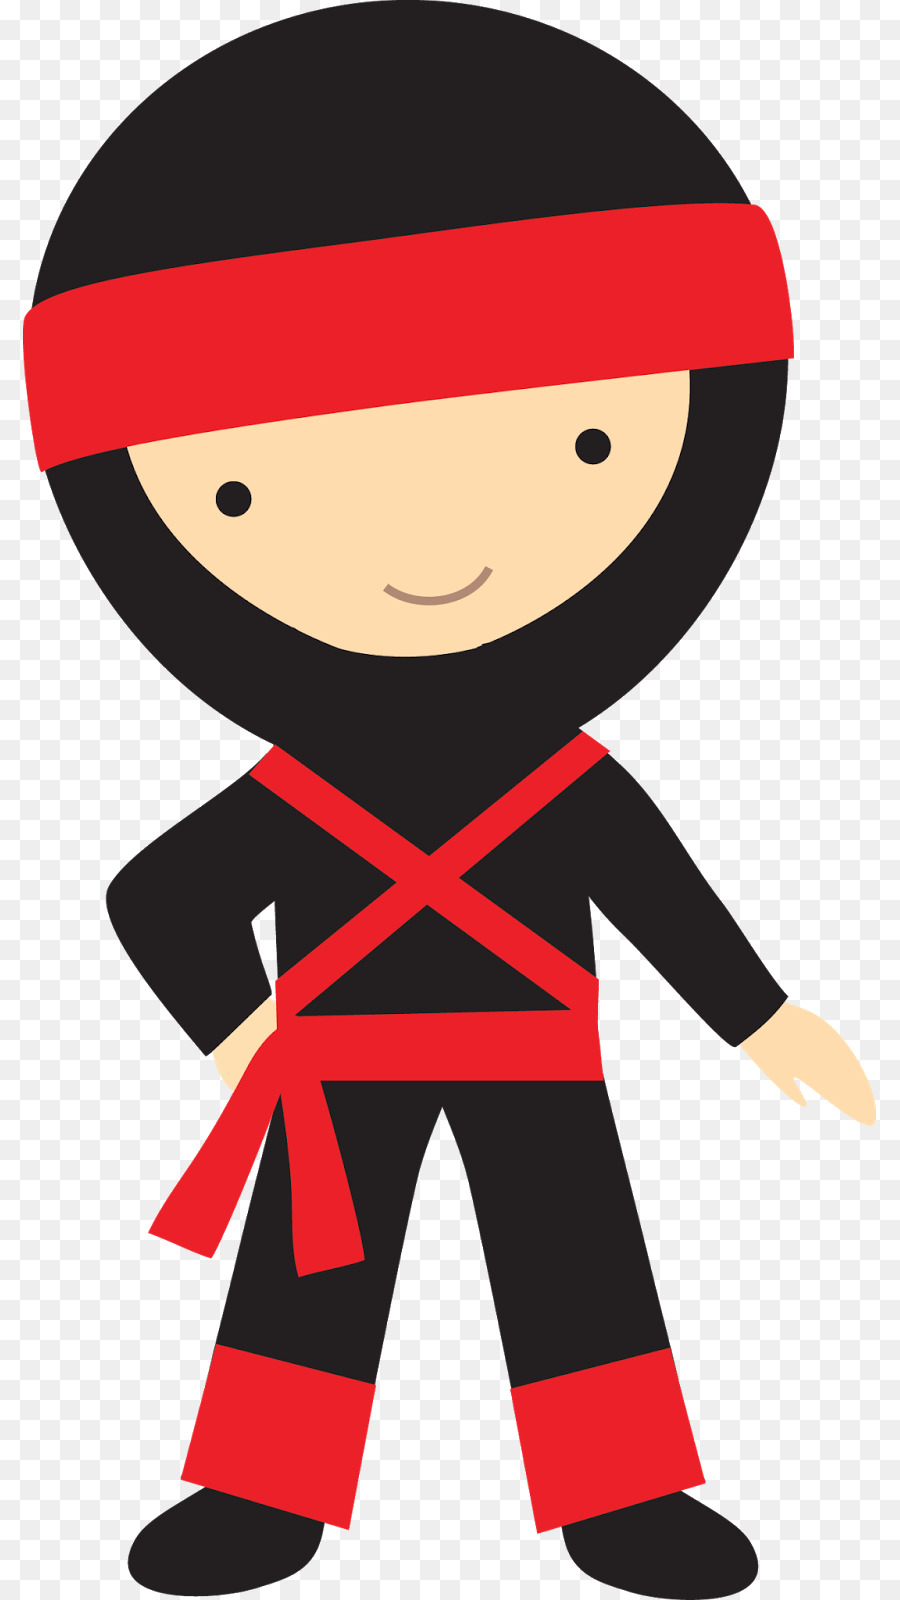 royalty free library Cartoon red boy transparent. Kid ninja clipart